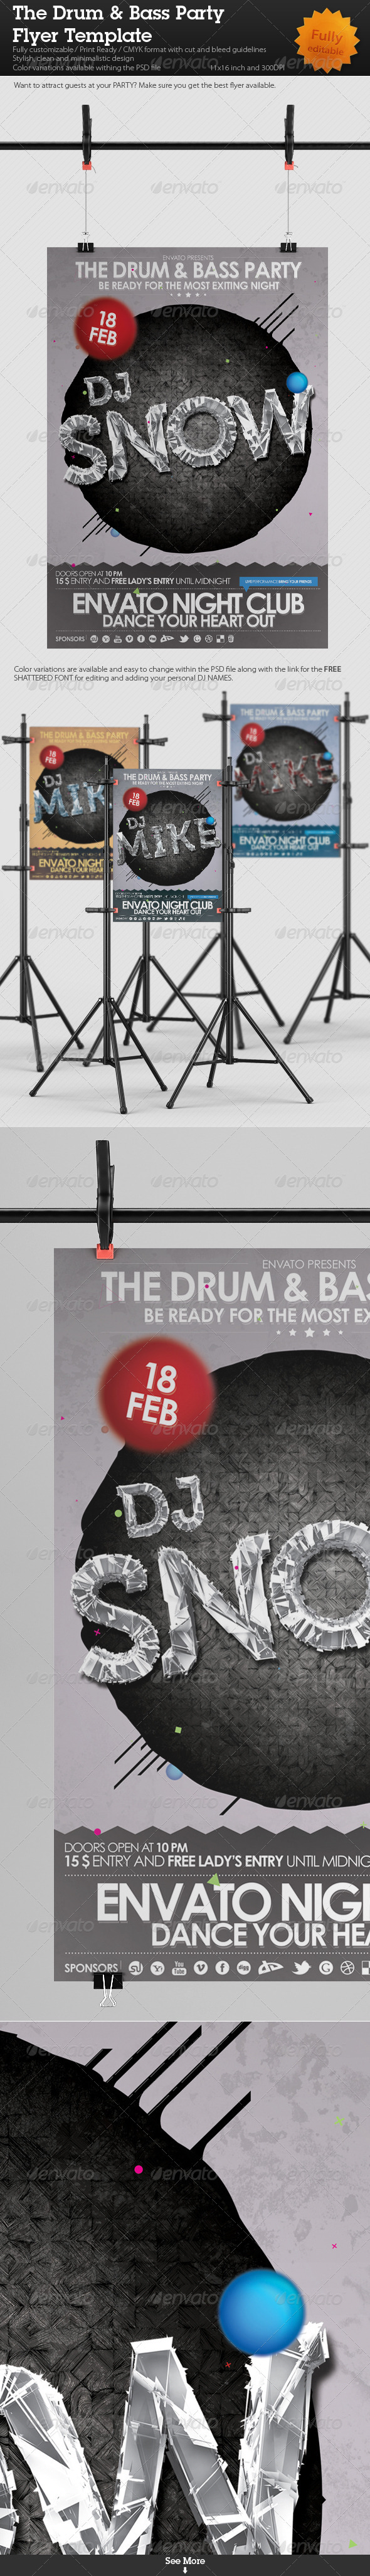 The Drum & Bass Party Flyer Template - Clubs & Parties Events